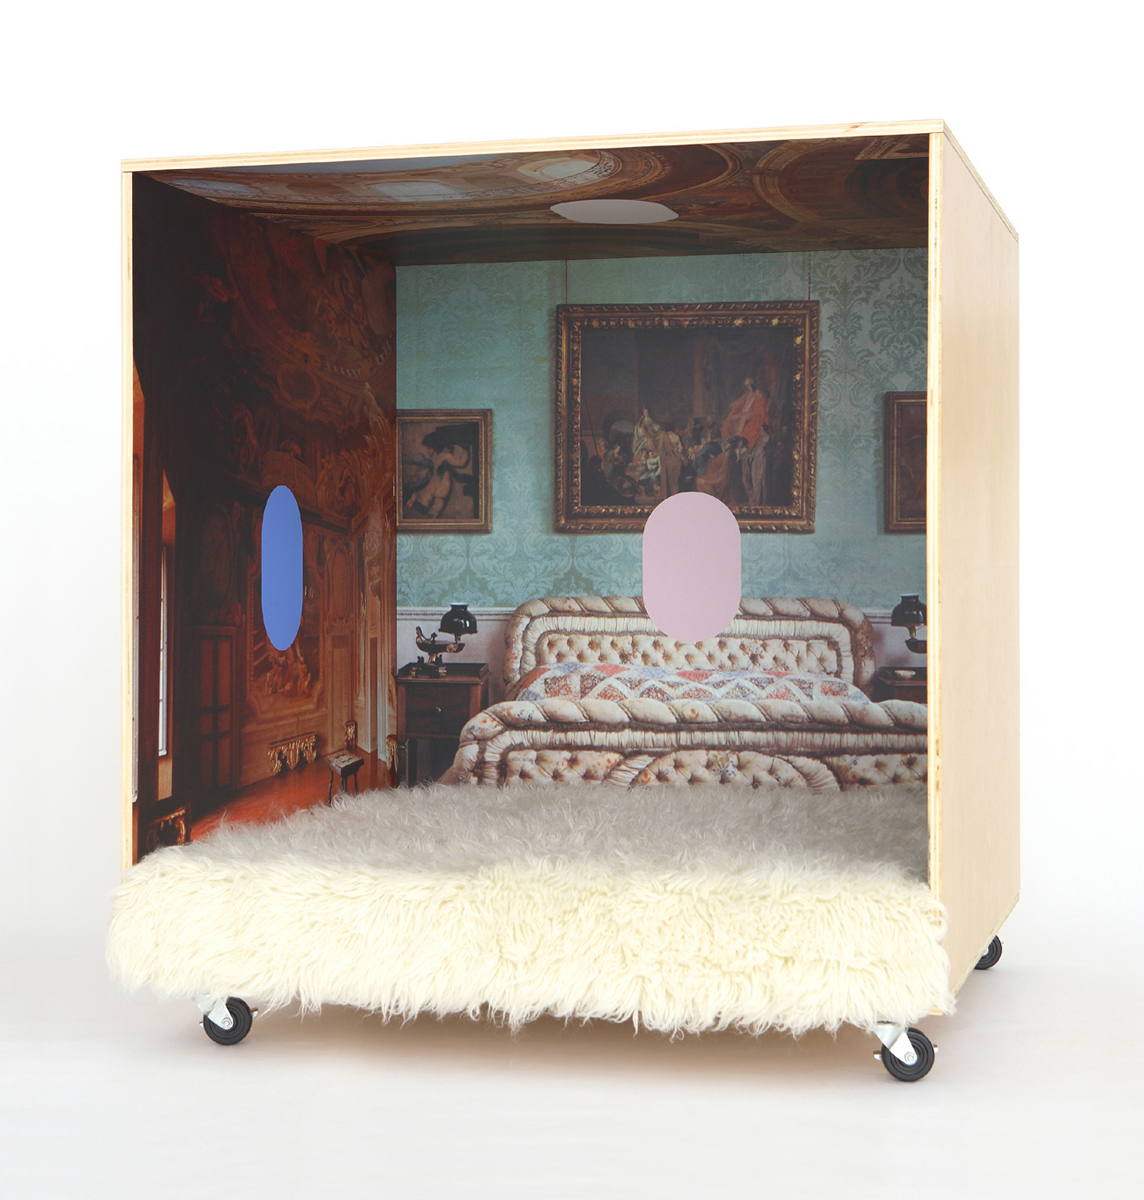 A plywood cube on wheels with an opulent interior with colorful oval graphics.